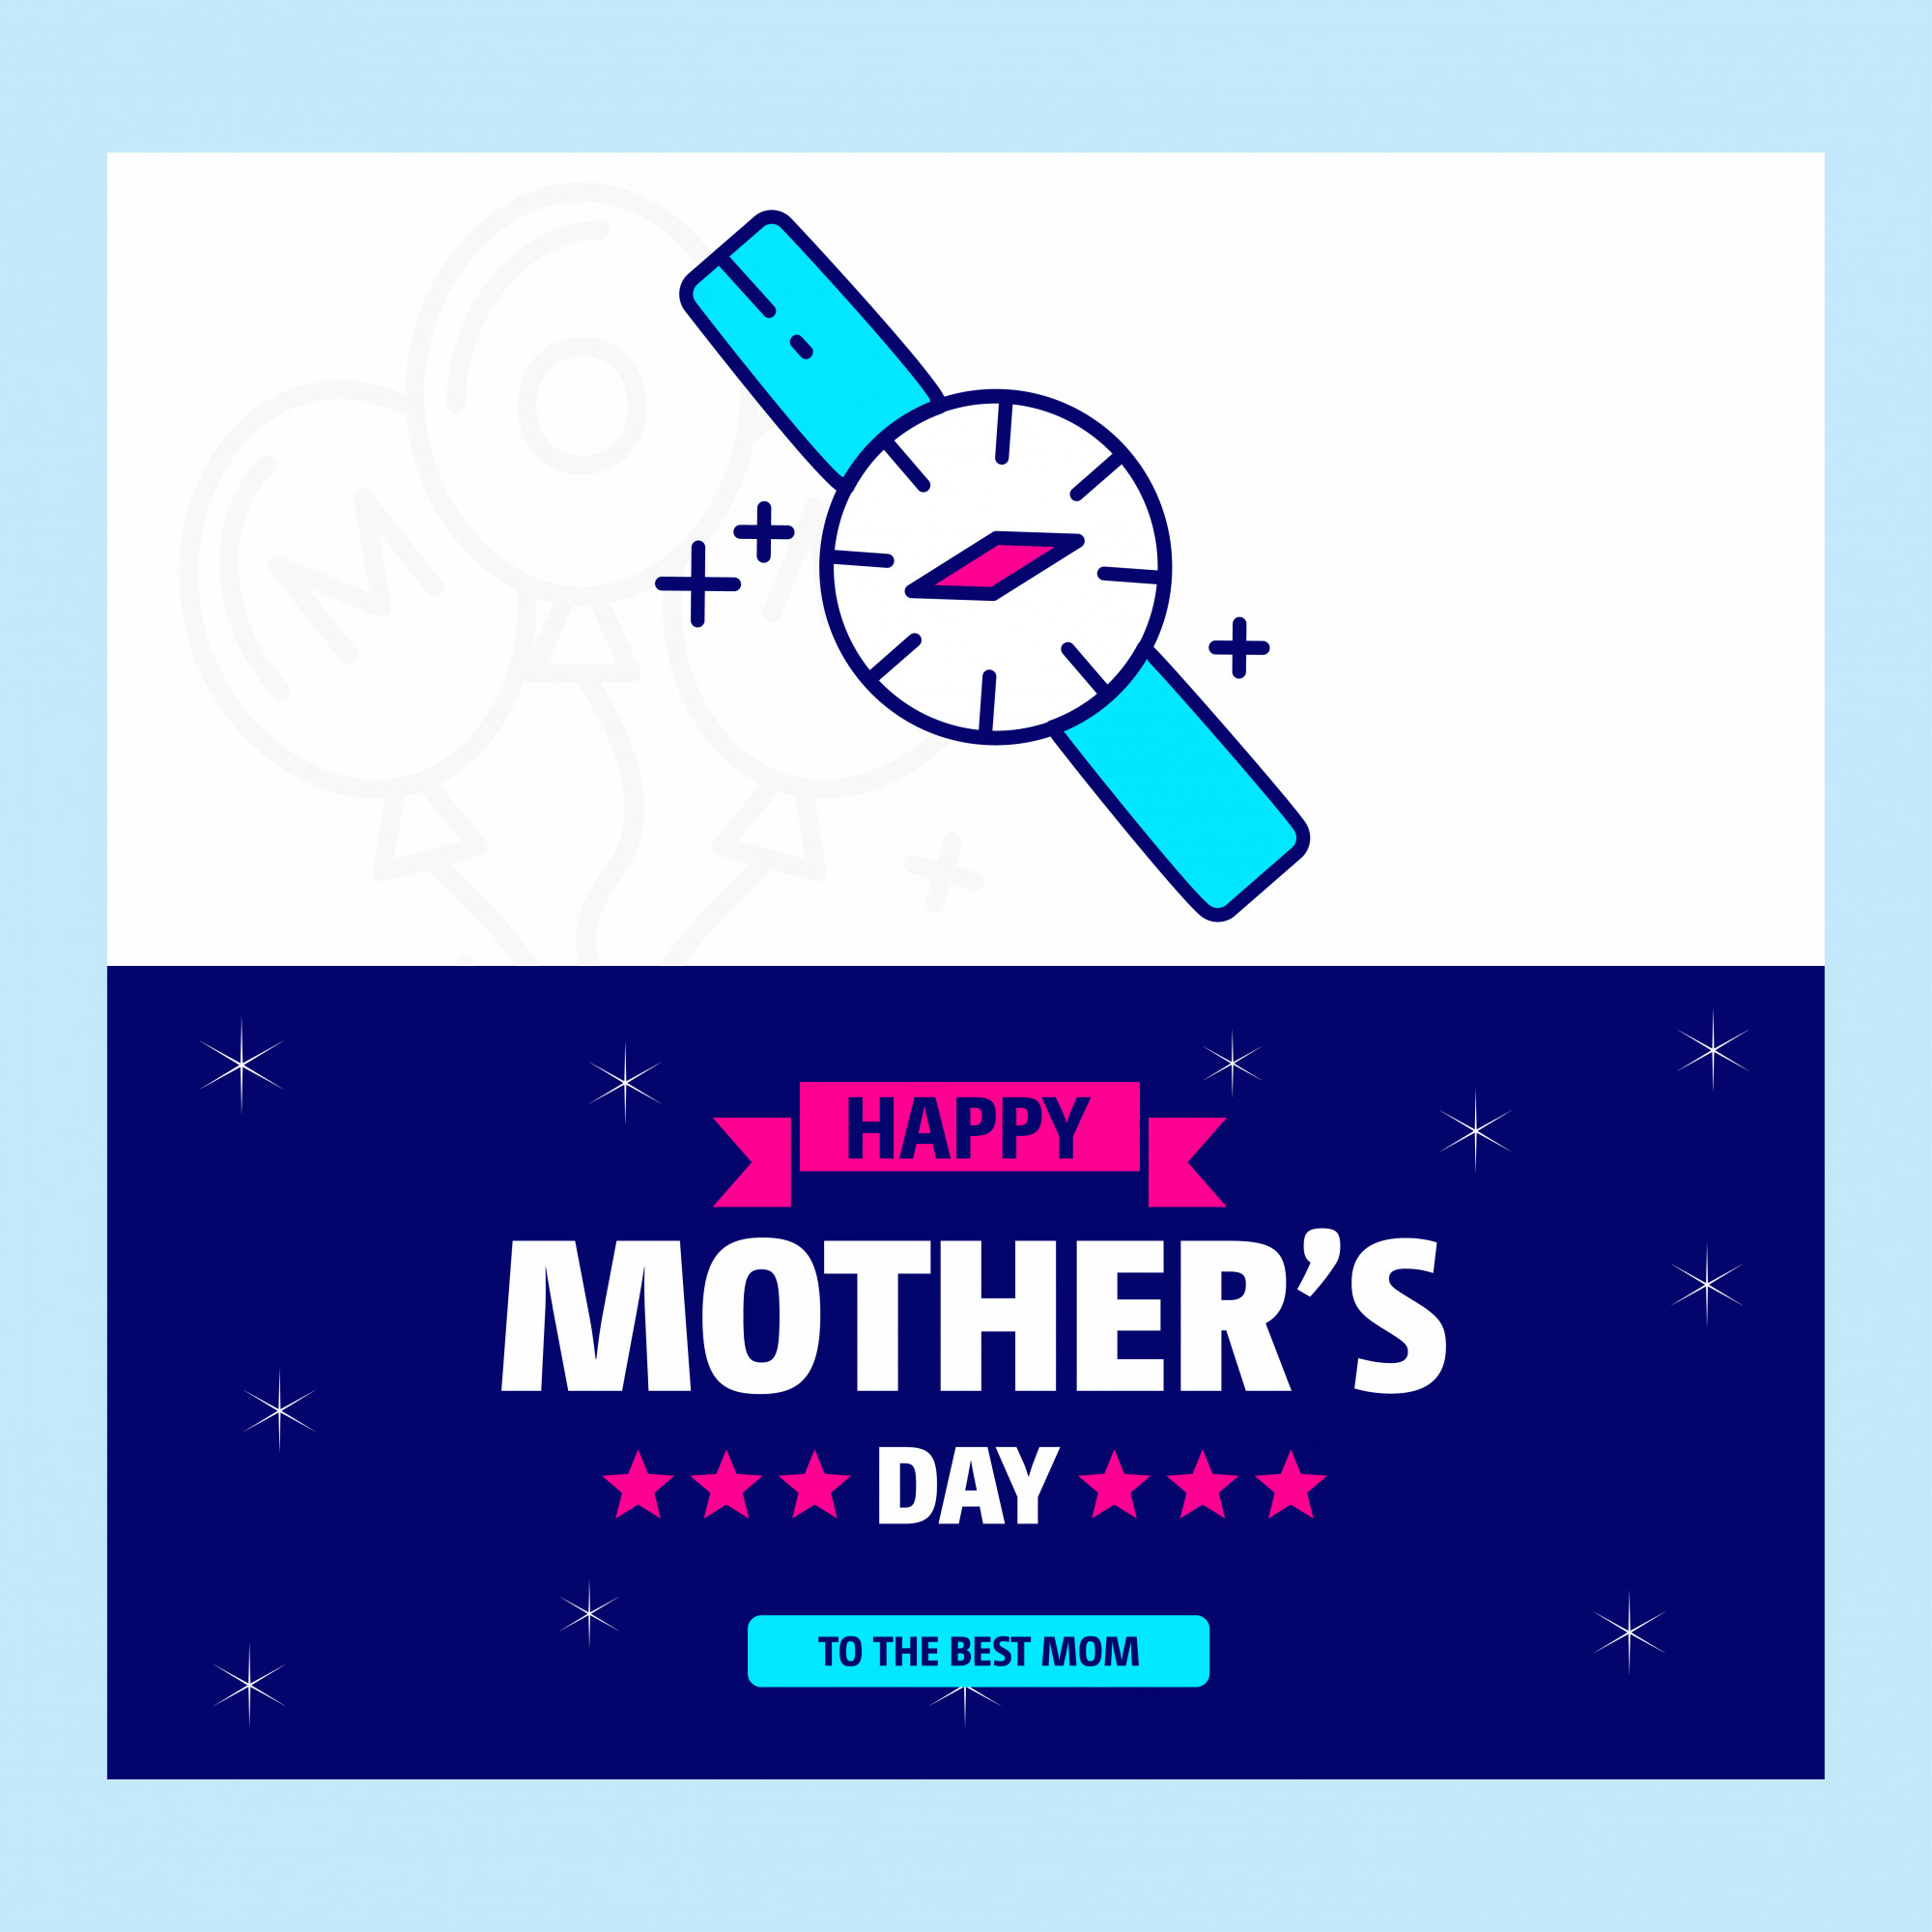 Mother's day typographic design